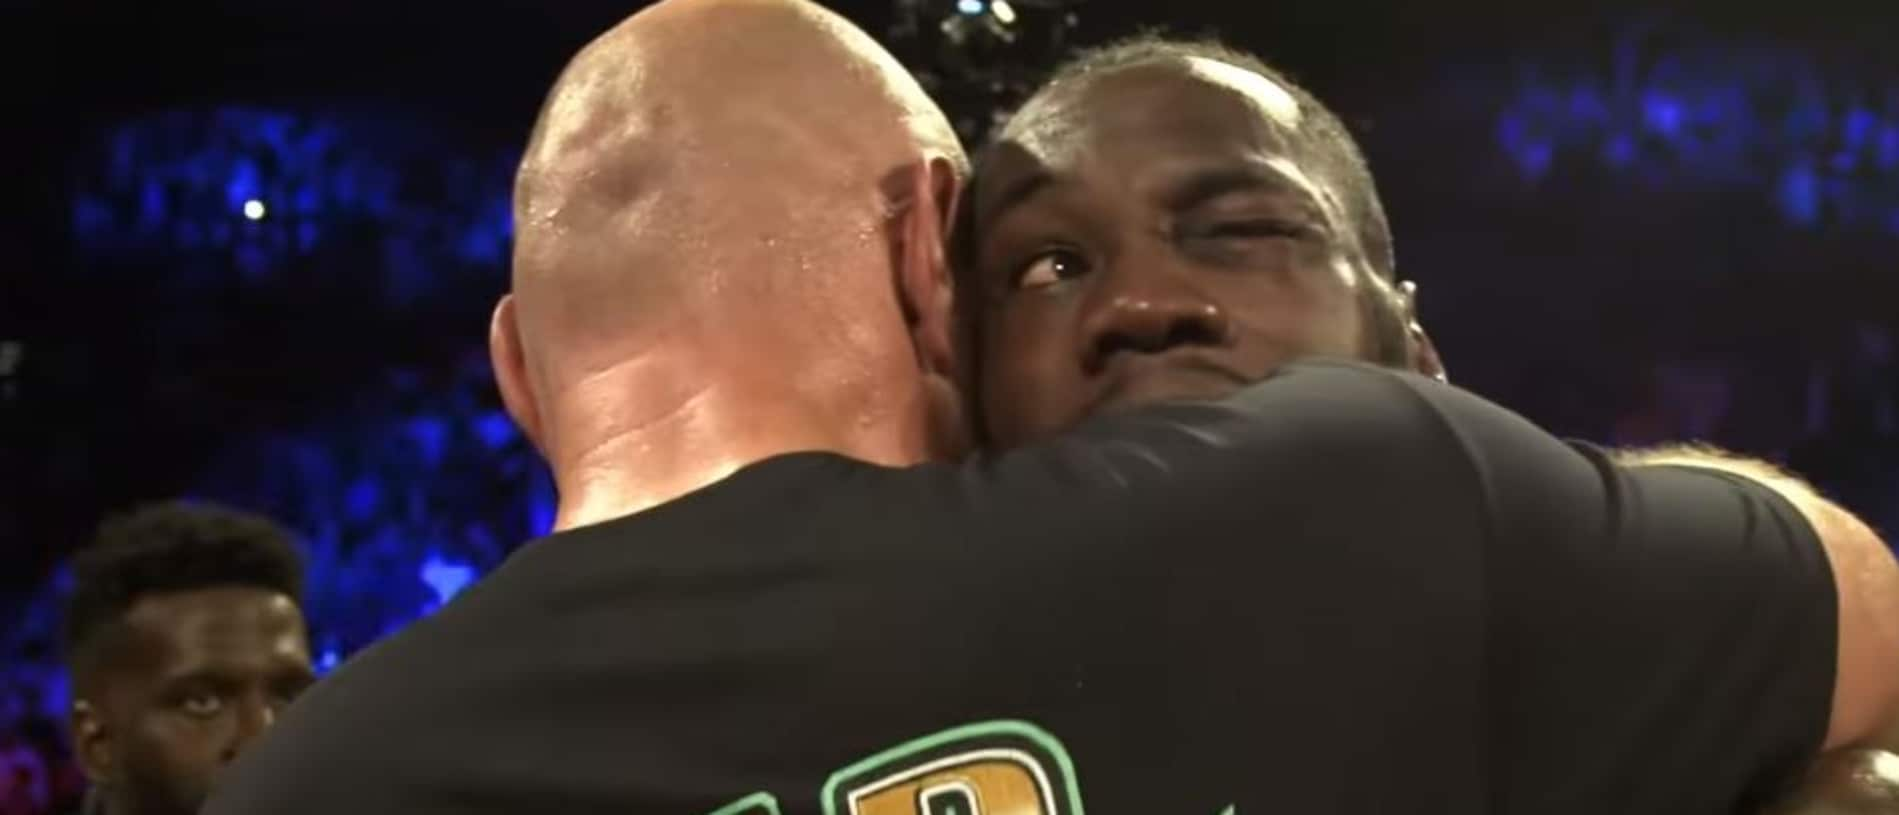 Tyson Fury had some lovely words for Deontay Wilder.